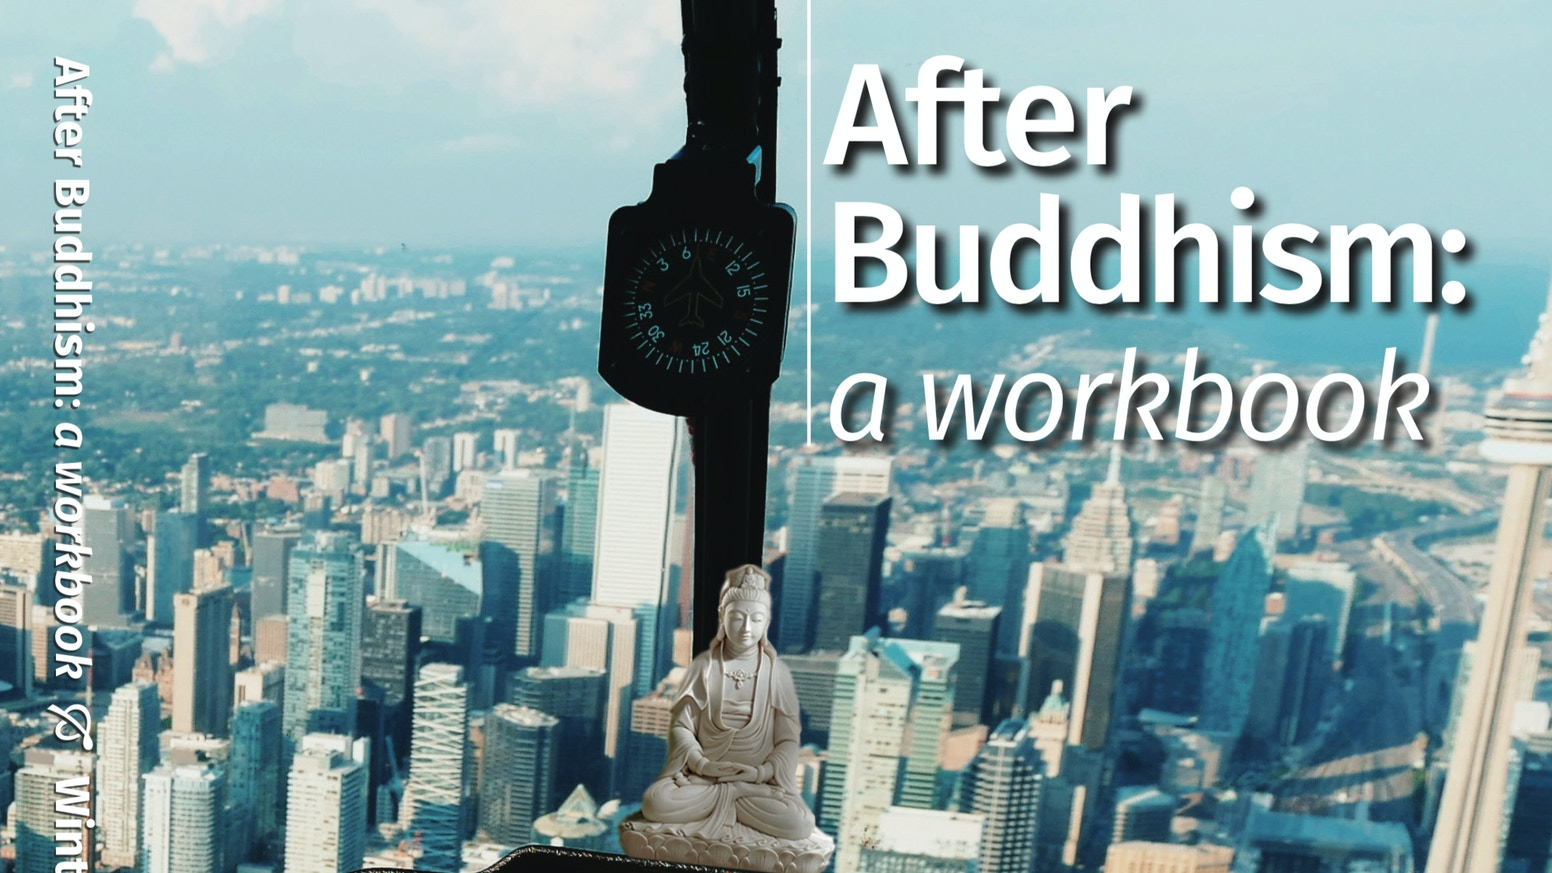 We sought help to produce, print, distribute and promote a book – 'After Buddhism: A workbook'